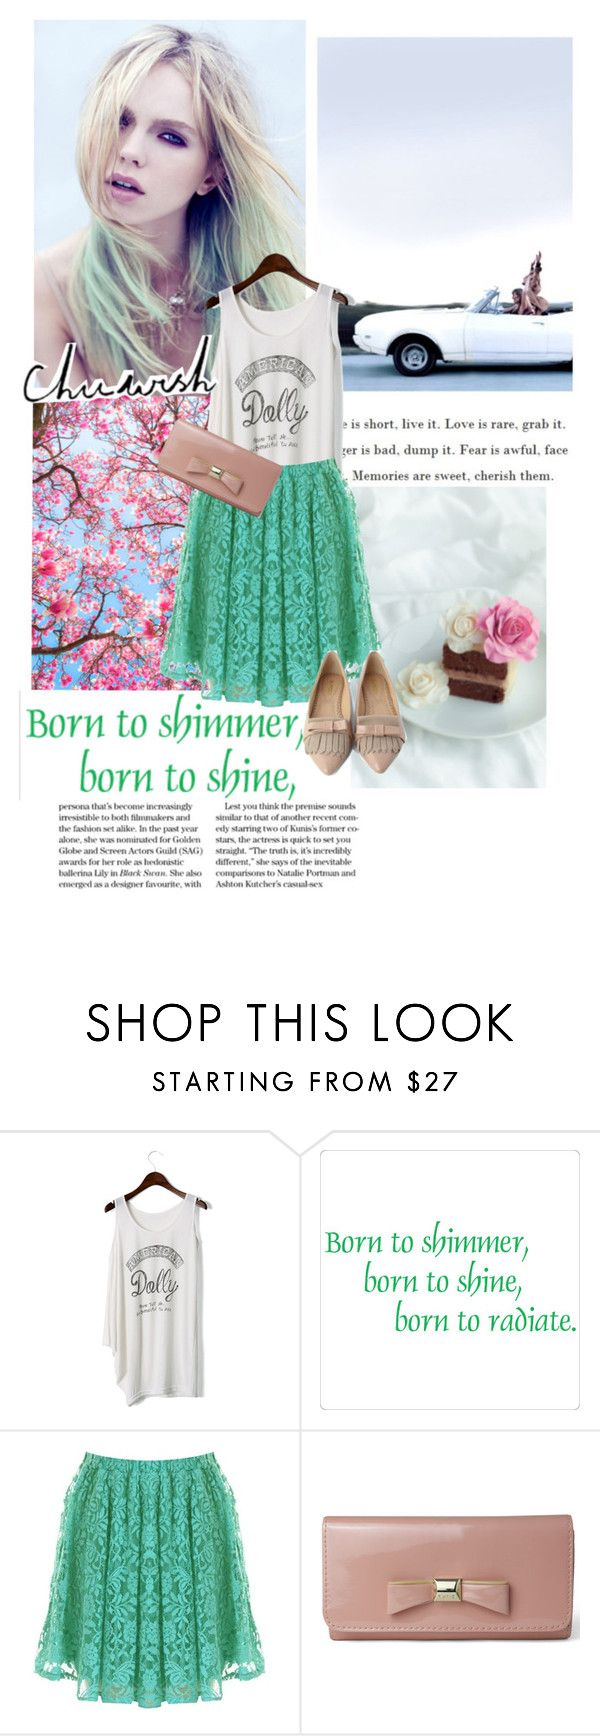 """""""So why don't we go somewhere only we know?"""" by milkandabsinth ❤ liked on Polyvore featuring Chicwish, Børn, pointed-toe flats, lace skirts, pastel colors, spring and chicwish"""